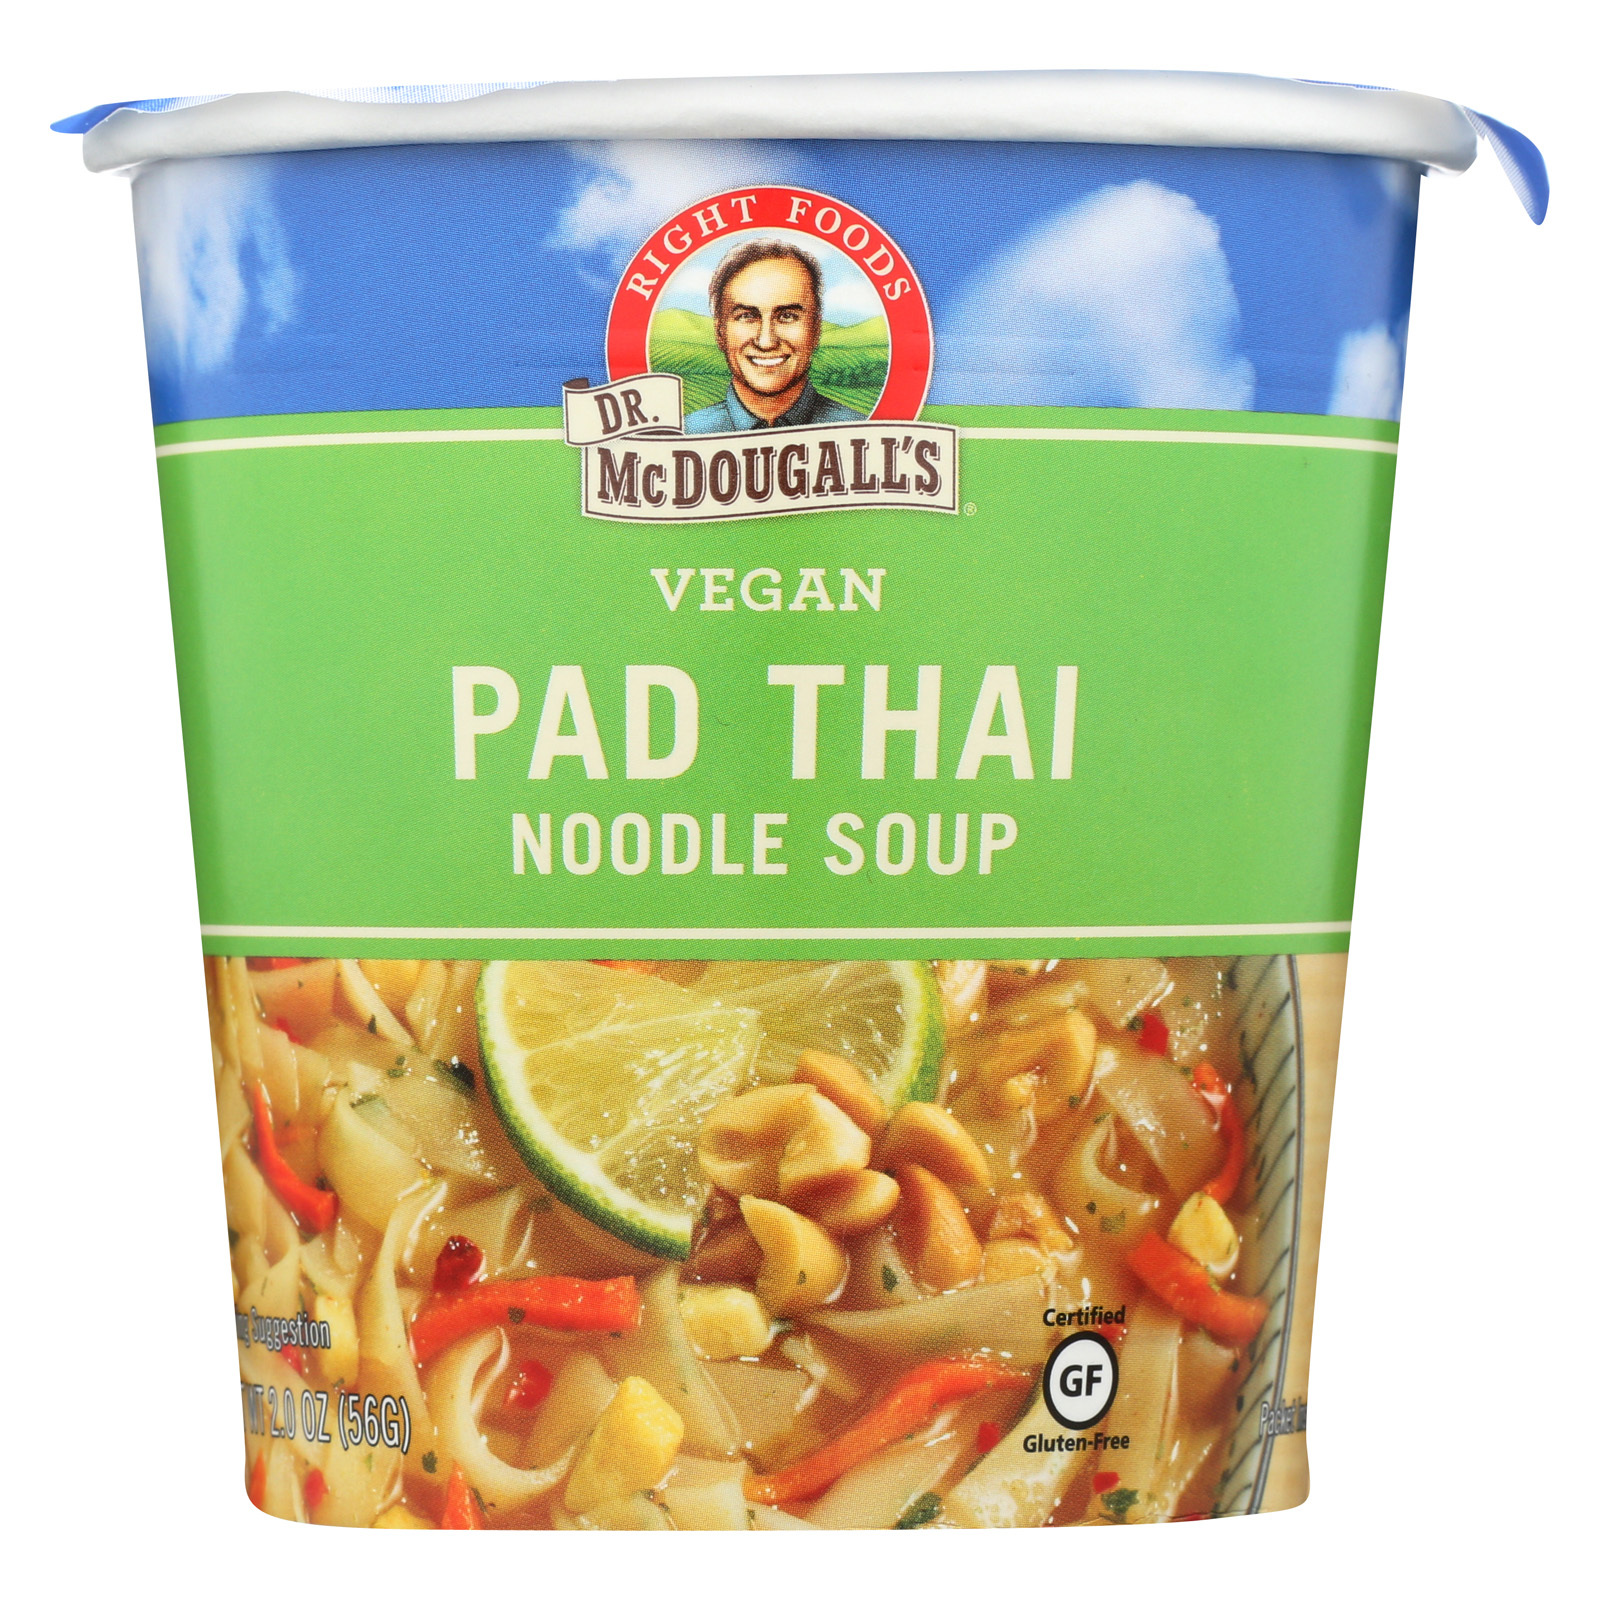 Dr. McDougall's Vegan Pad Thai Noodle Soup Big Cup - Case of 6 - 2 oz.